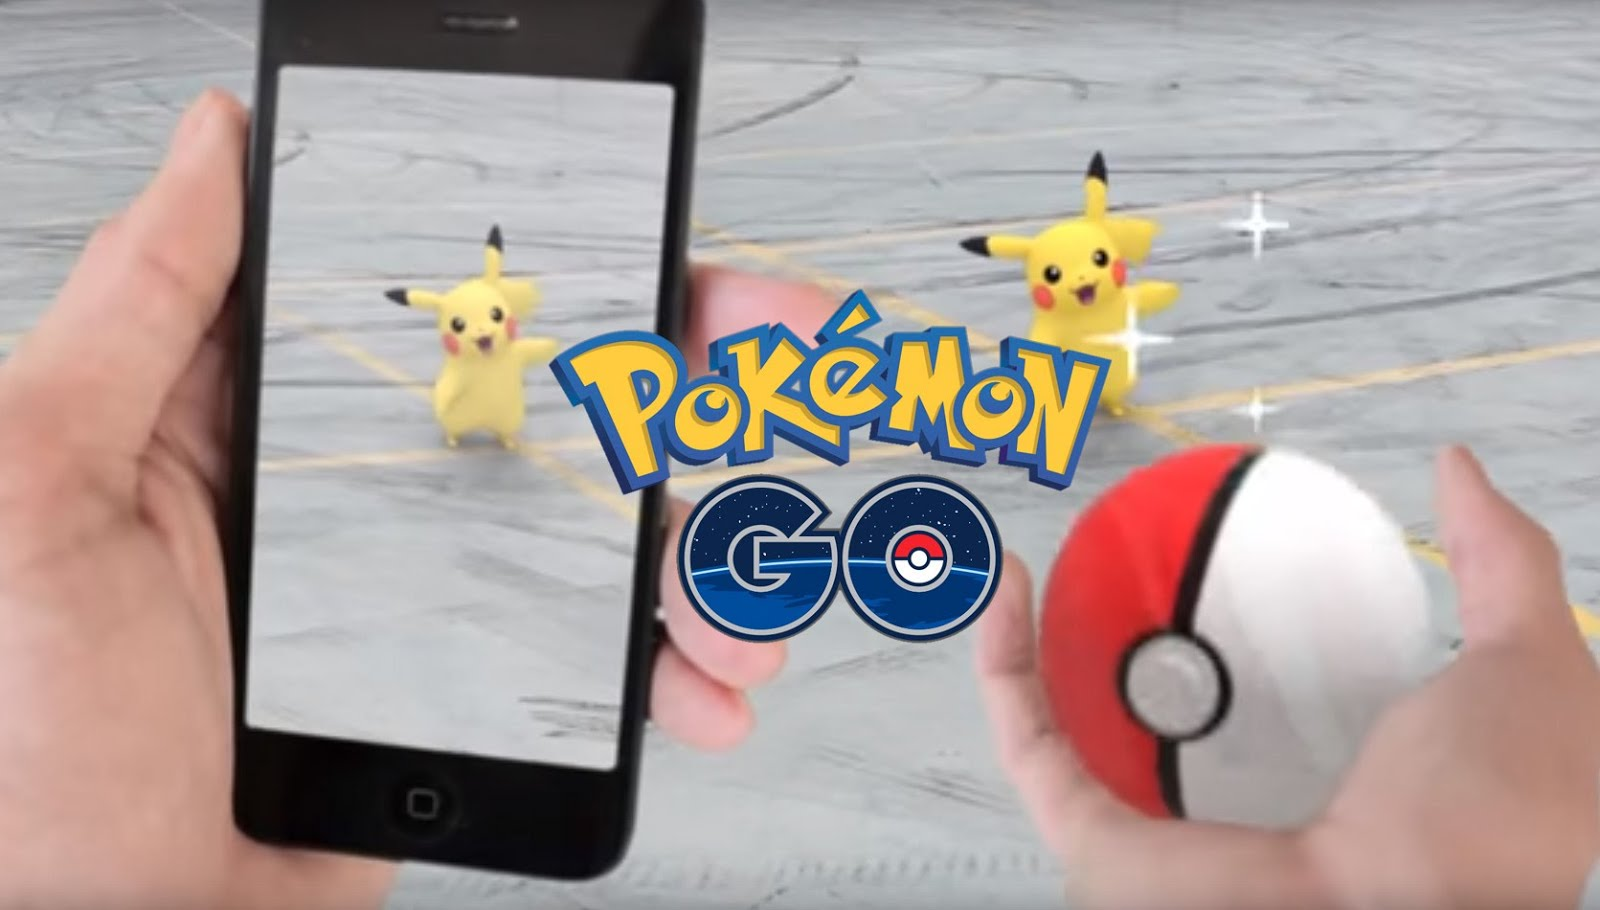 Pokemon Go Download free updated apk - Movies Music & Games